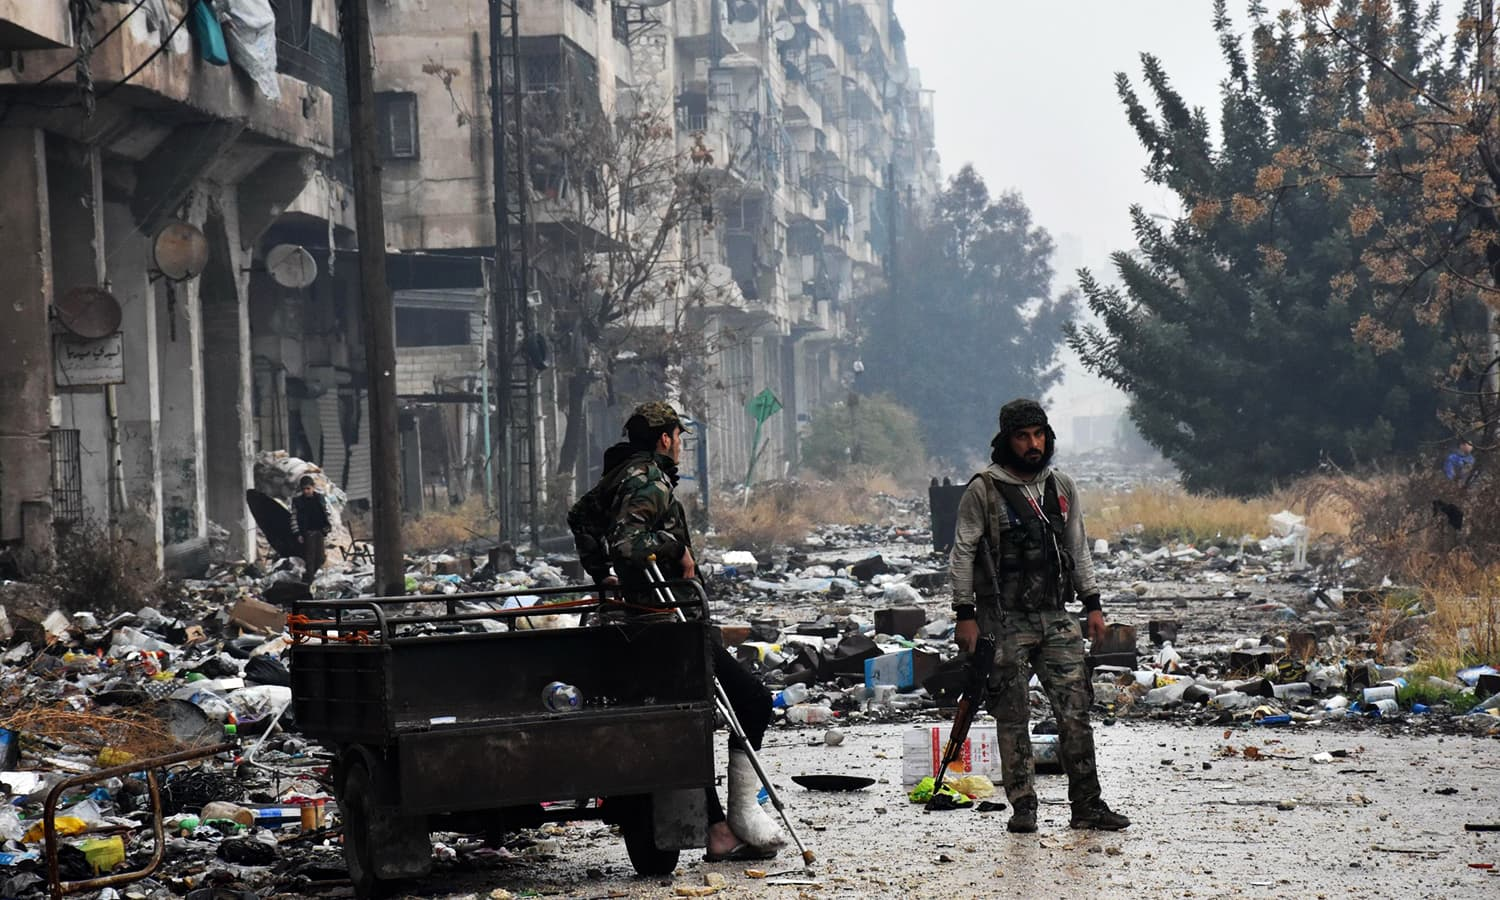 Syrian pro-government forces walk in Aleppo's Bustan al-Qasr neighbourhood after they captured the area in the eastern part of the war torn city on December 13, 2016. ─ AFP